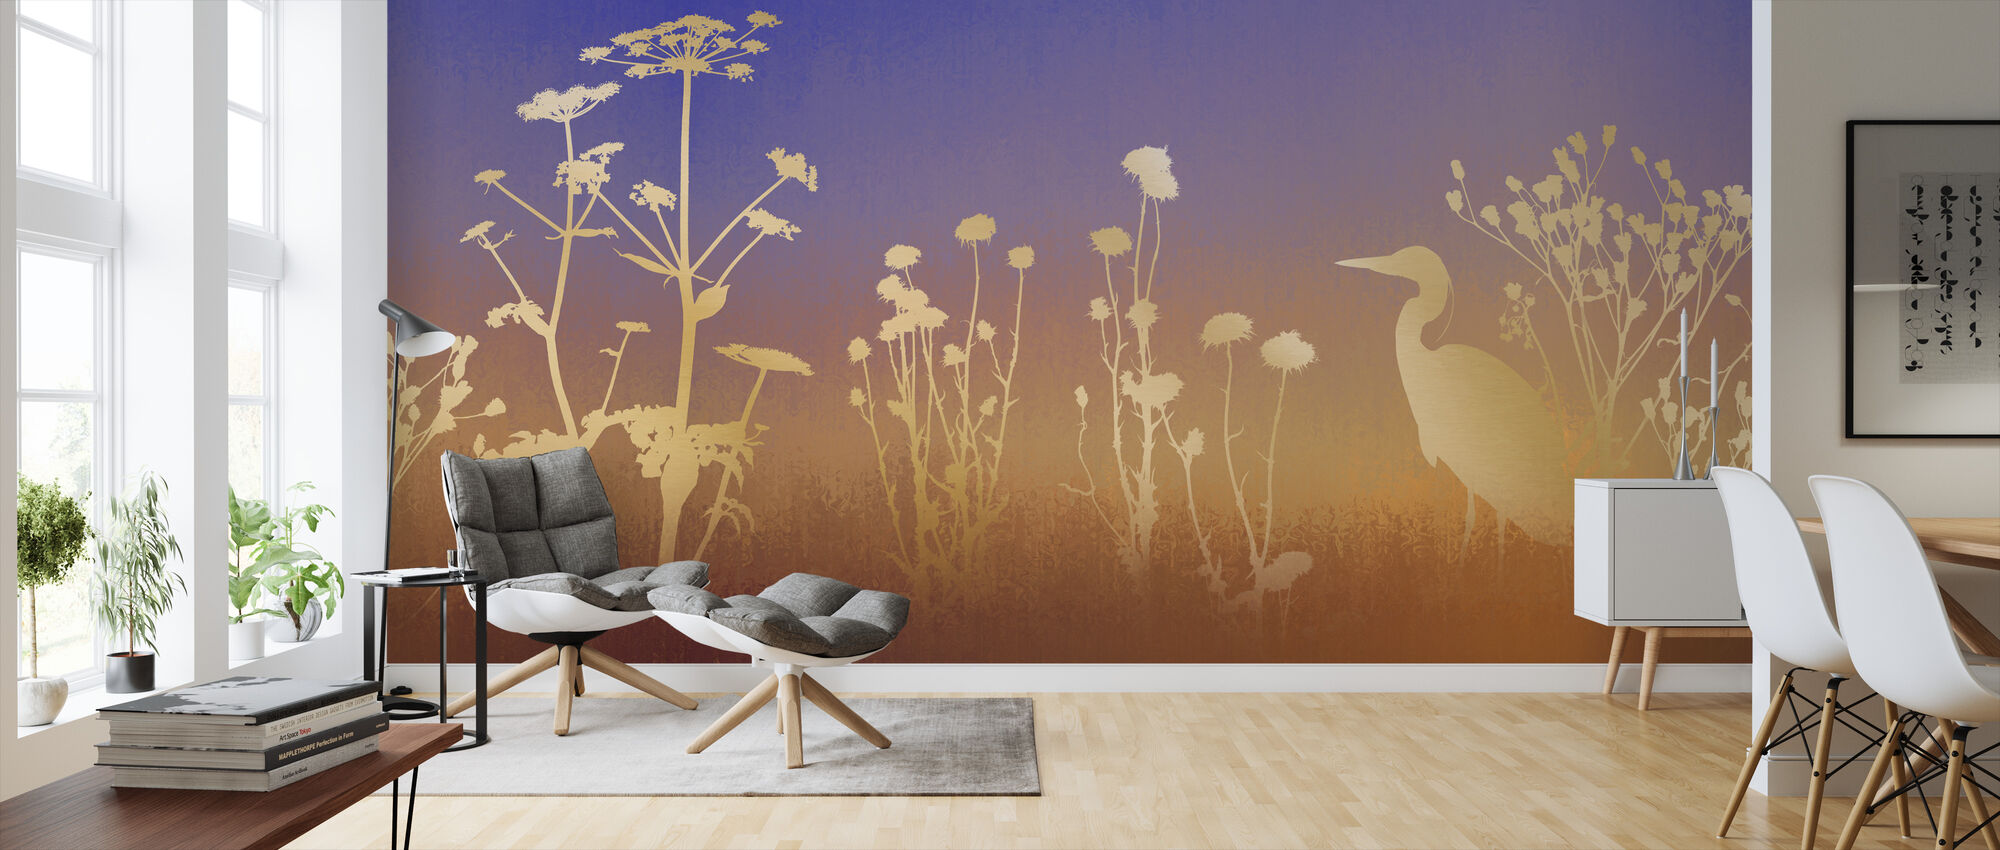 Dawn Silhouettes - Wallpaper - Living Room